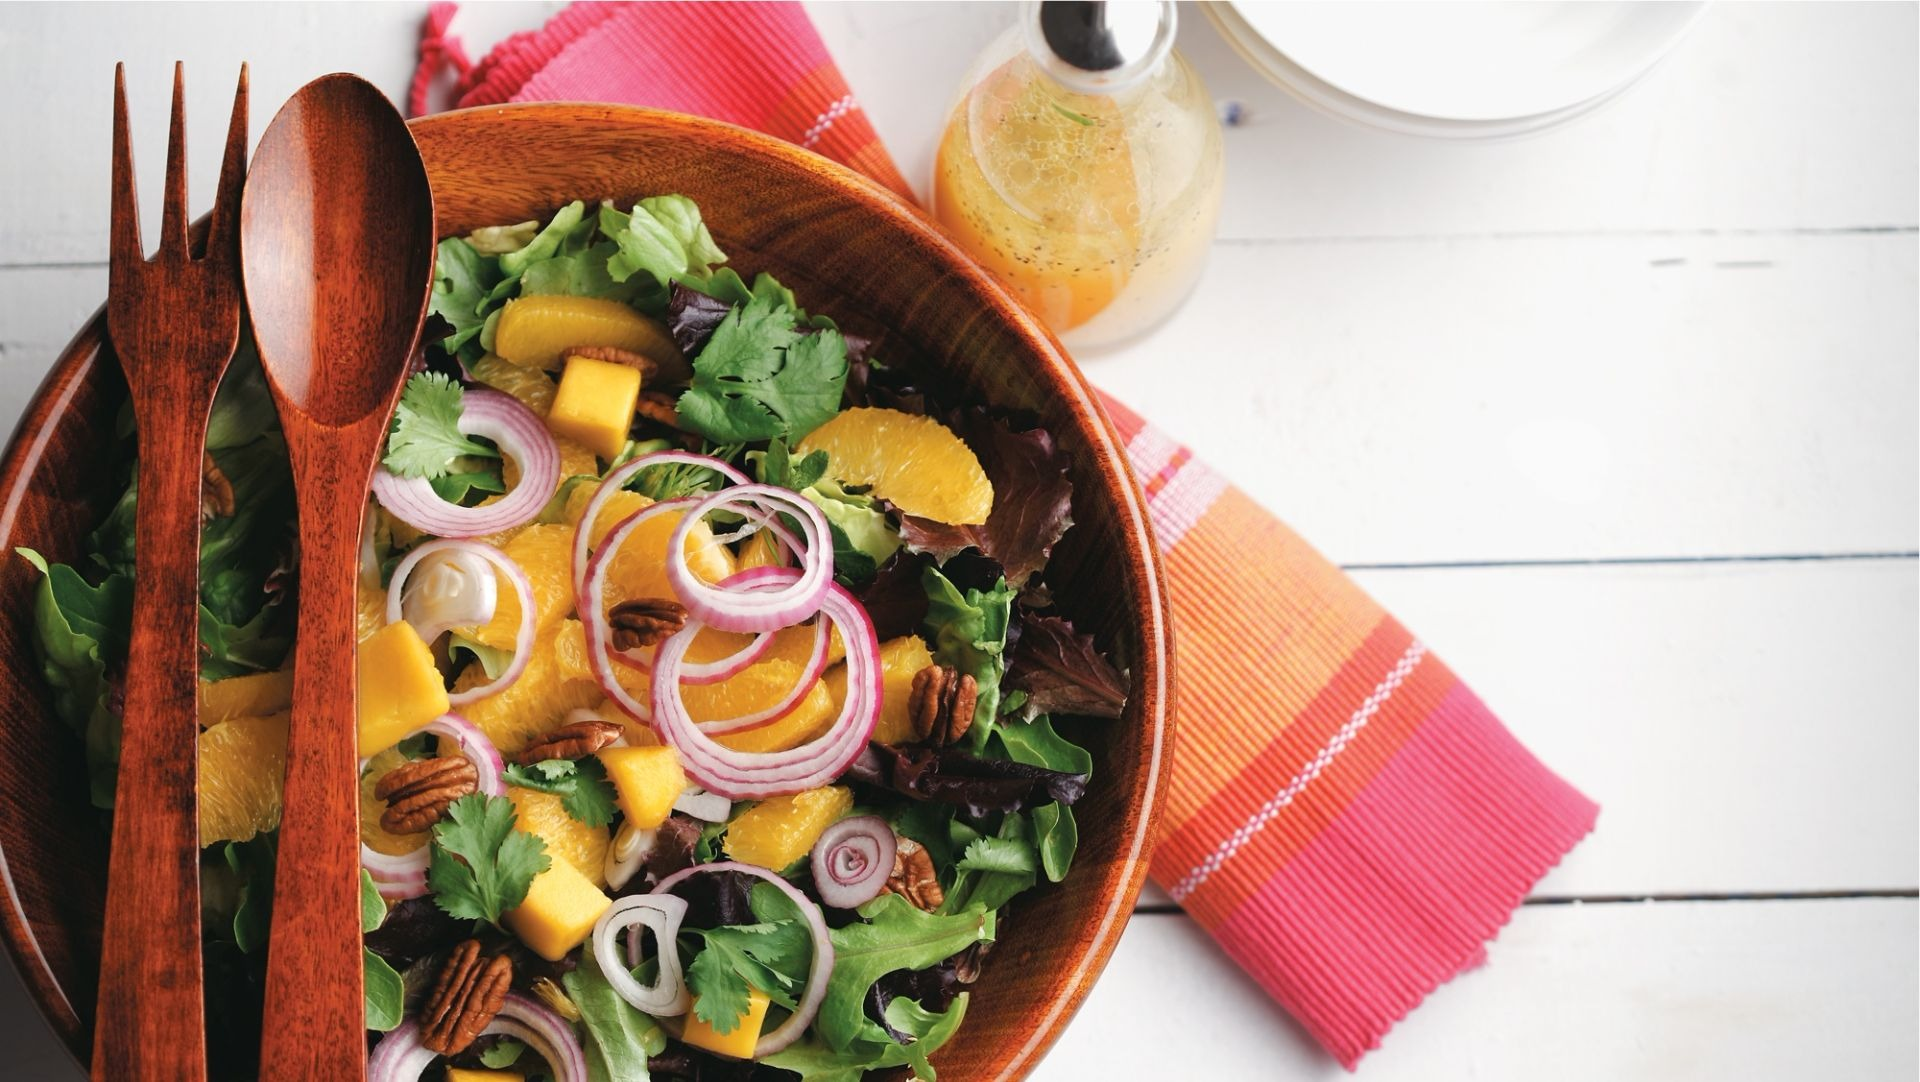 Mixed greens, mango and pecan salad in a wooden bowl with wooden utensils.